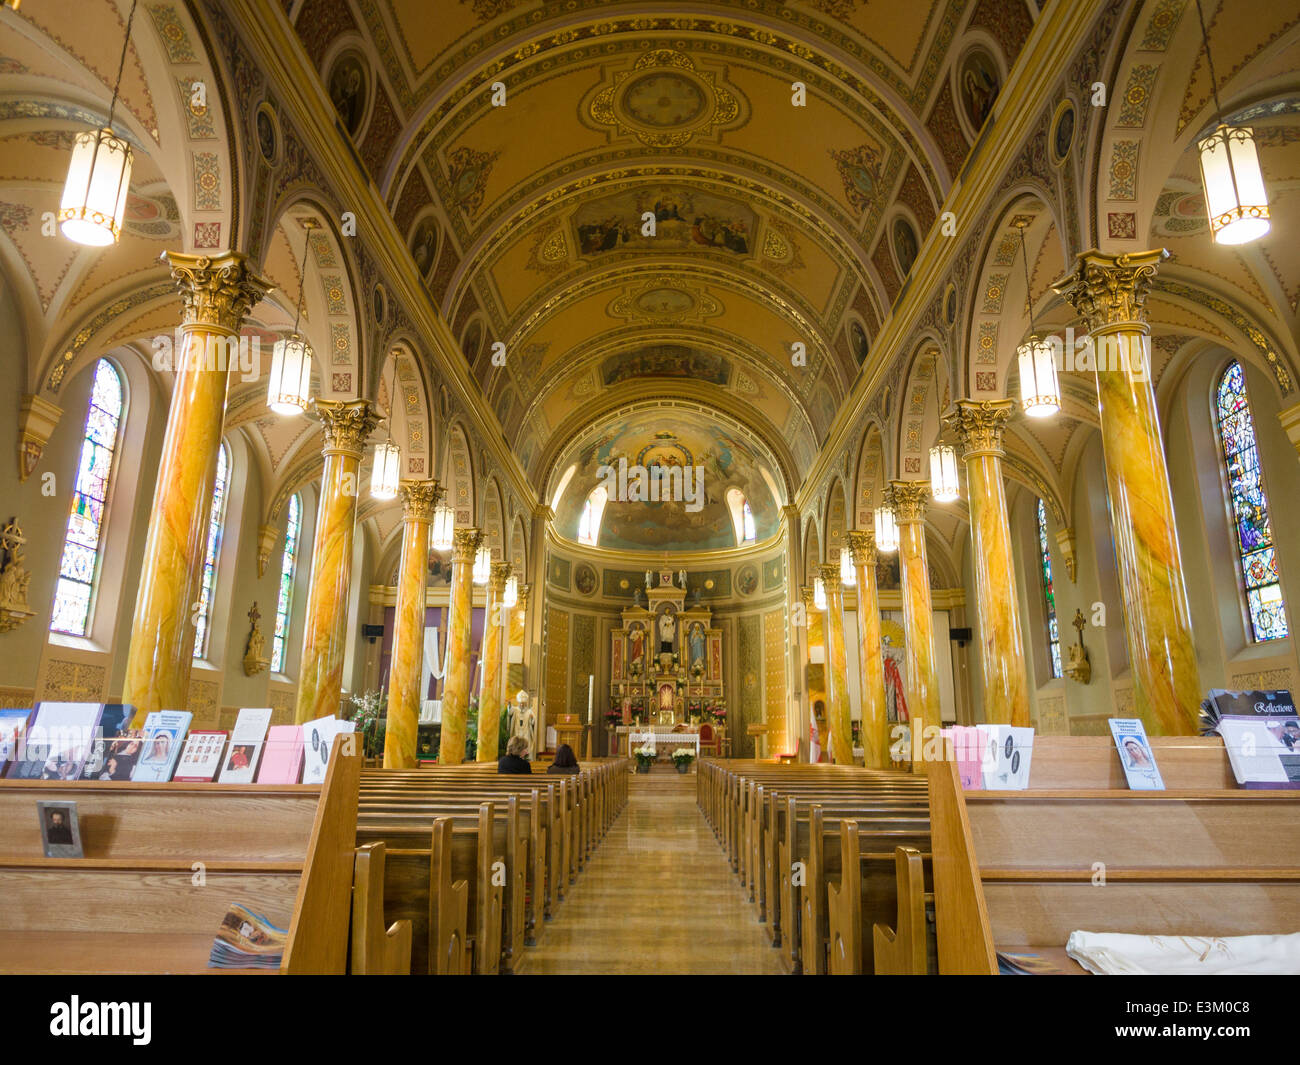 Centre Aisle of St Stanislaus RC Polish Church. The ornate and highly decorated interior of this Polish community - Stock Image